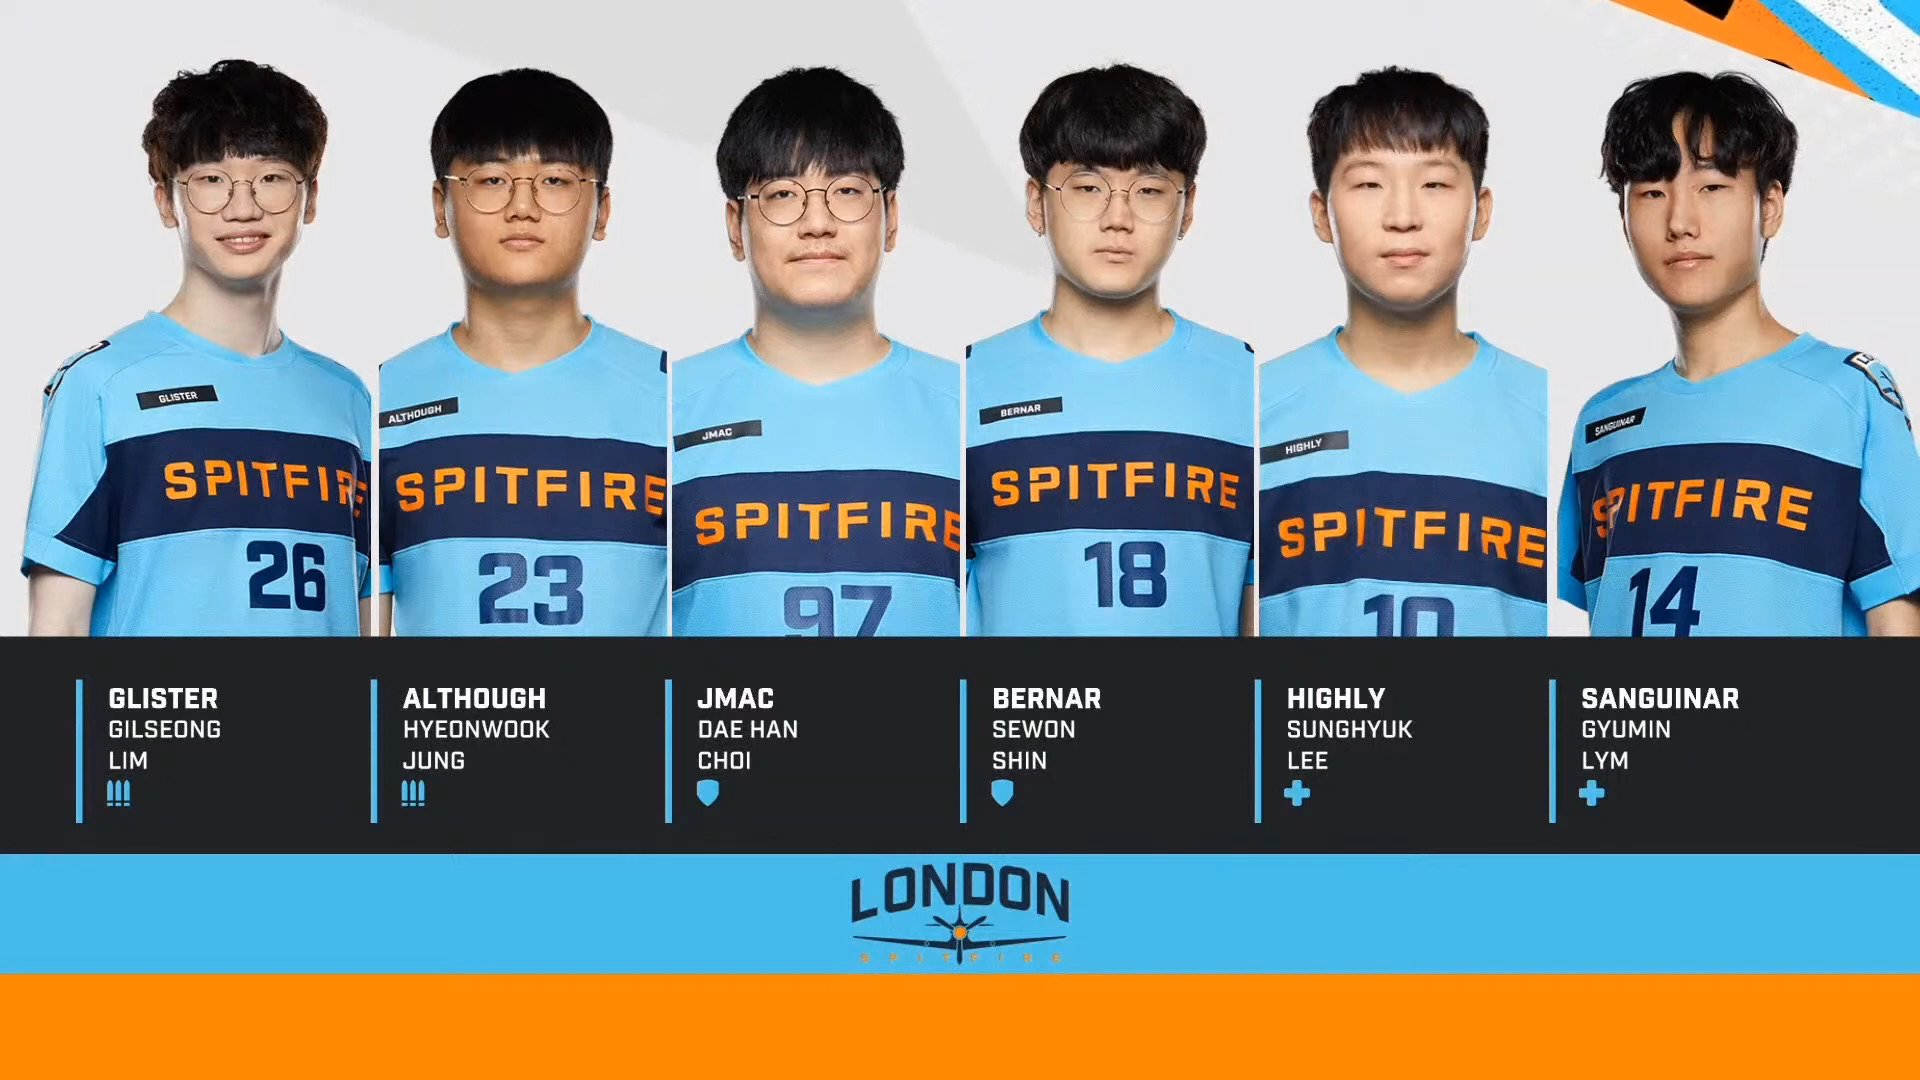 OWL – The London Spitfire Continues Its Rebuilding And Let Goes Seven Players